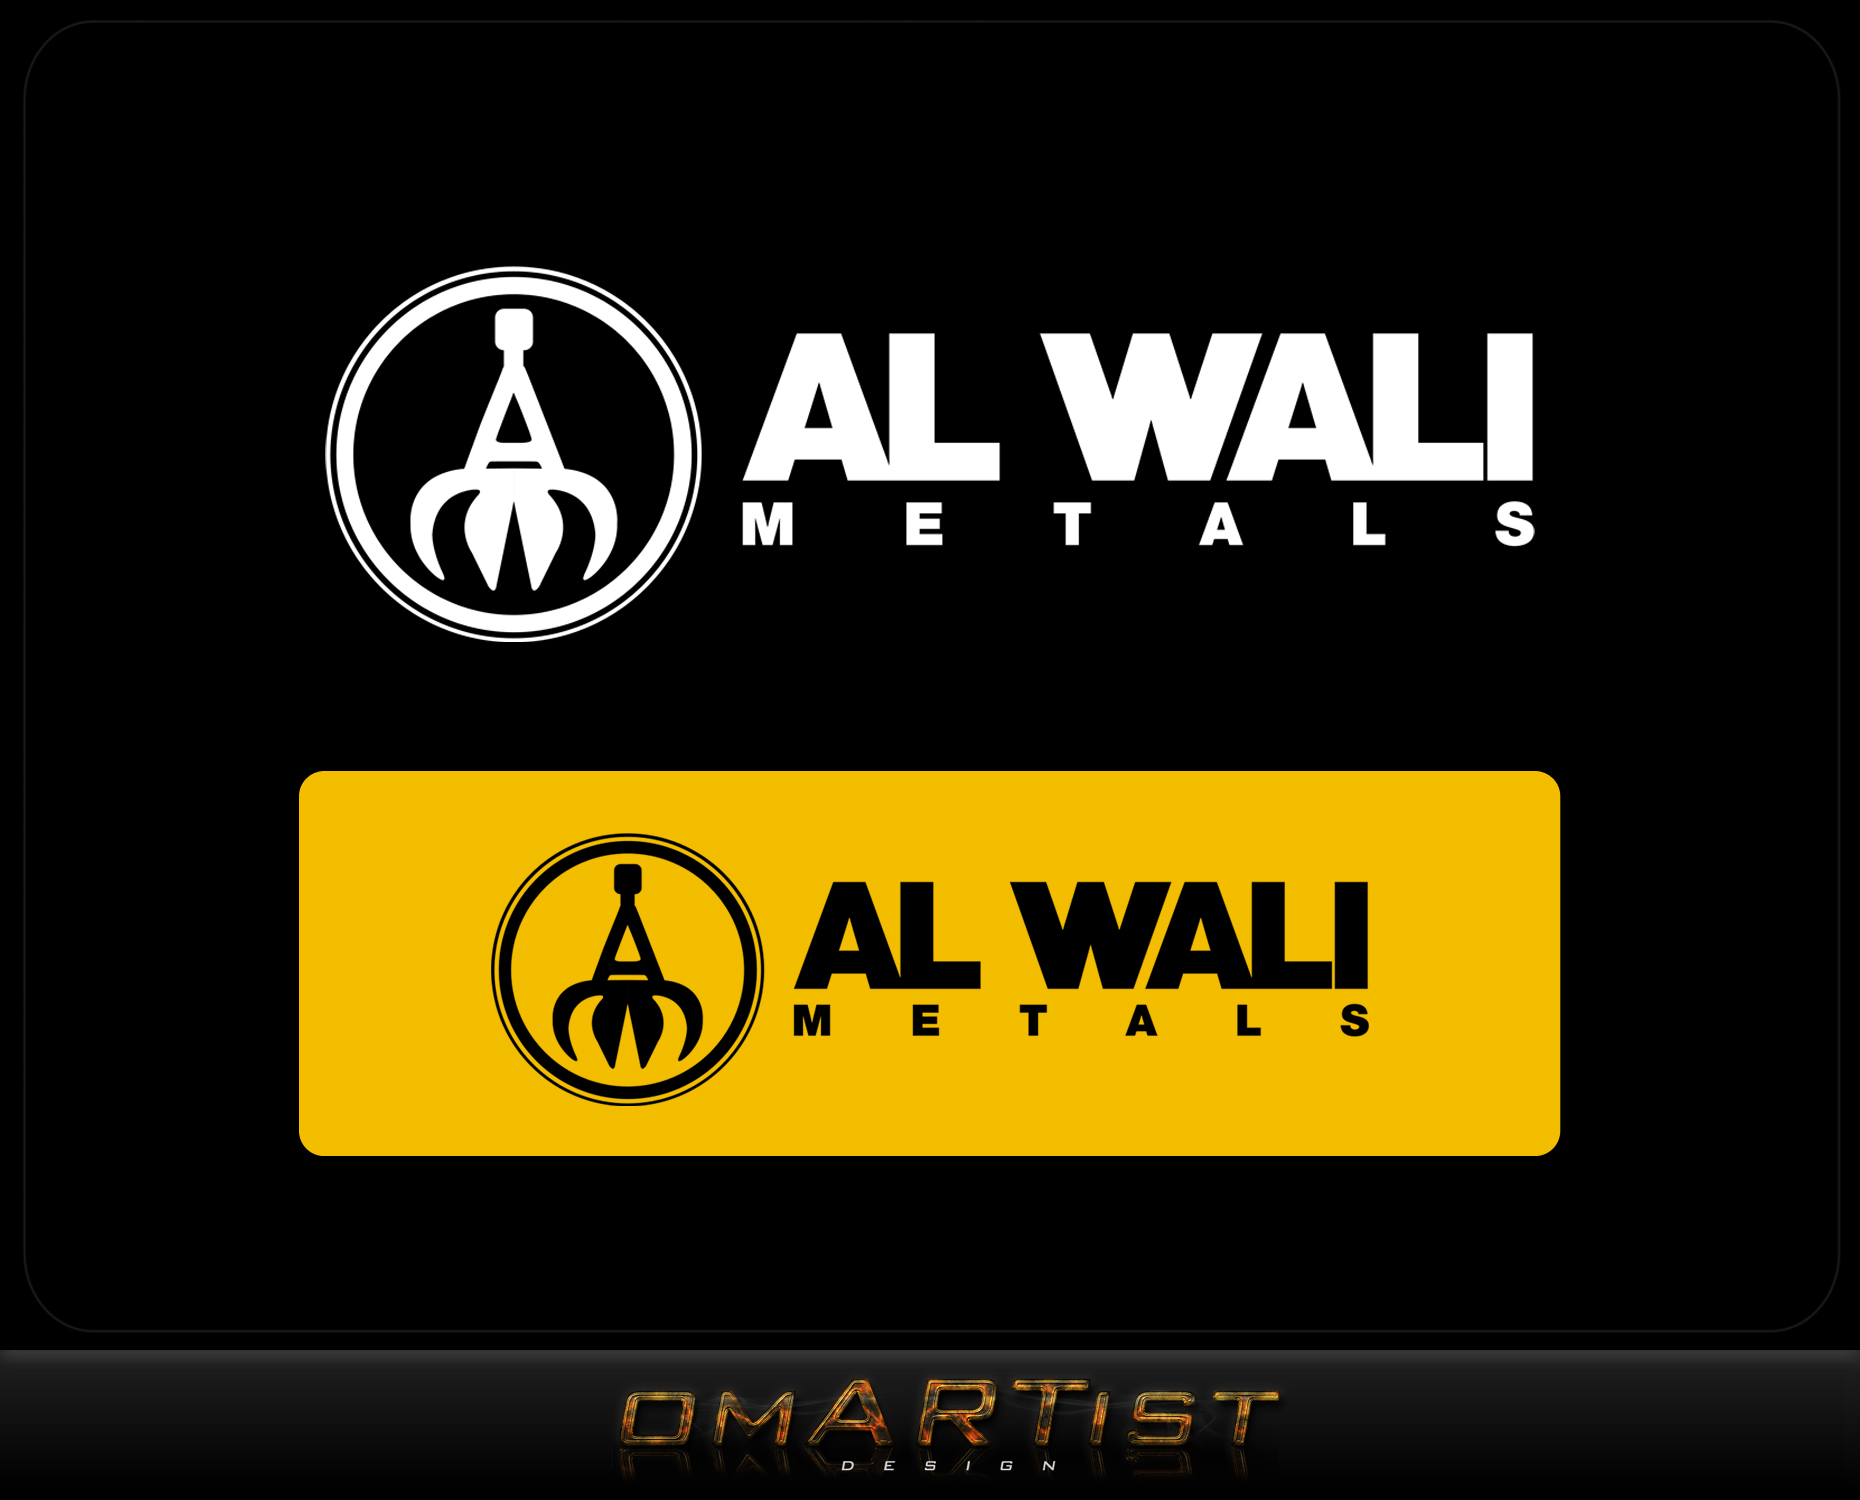 Logo Design by omARTist - Entry No. 105 in the Logo Design Contest Inspiring Logo Design for Al Wali Metals.